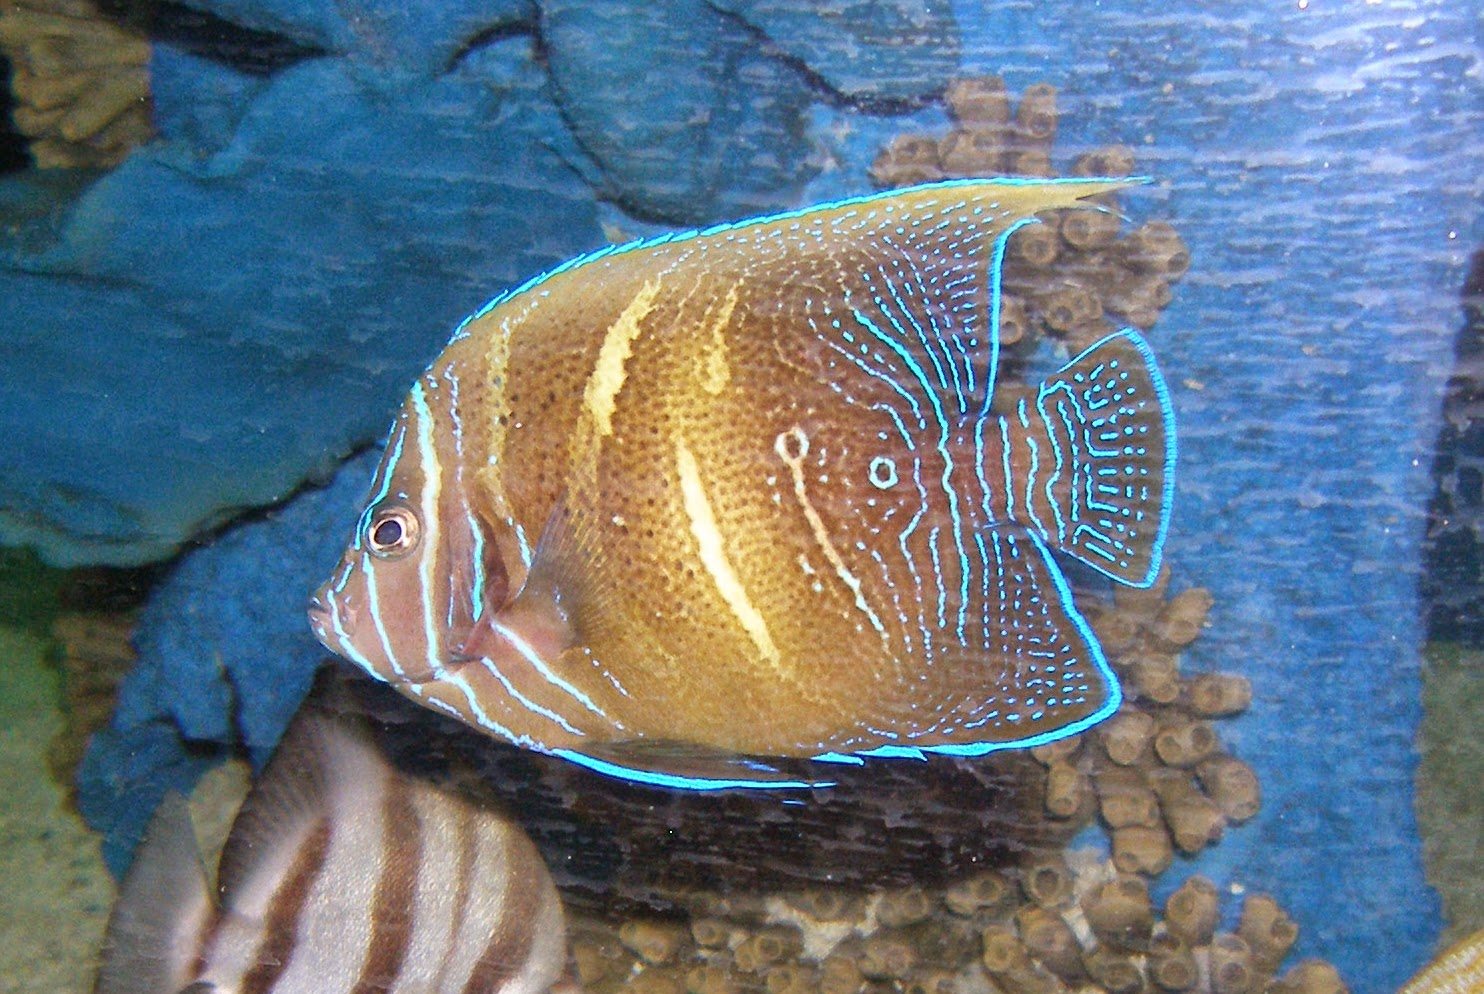 Figure 4.  Angelfish (~2 years old) on display at SeaWorld San Antonio. Figure 4 and 5 are the same fish.  Photo credit: Nick Ireland.